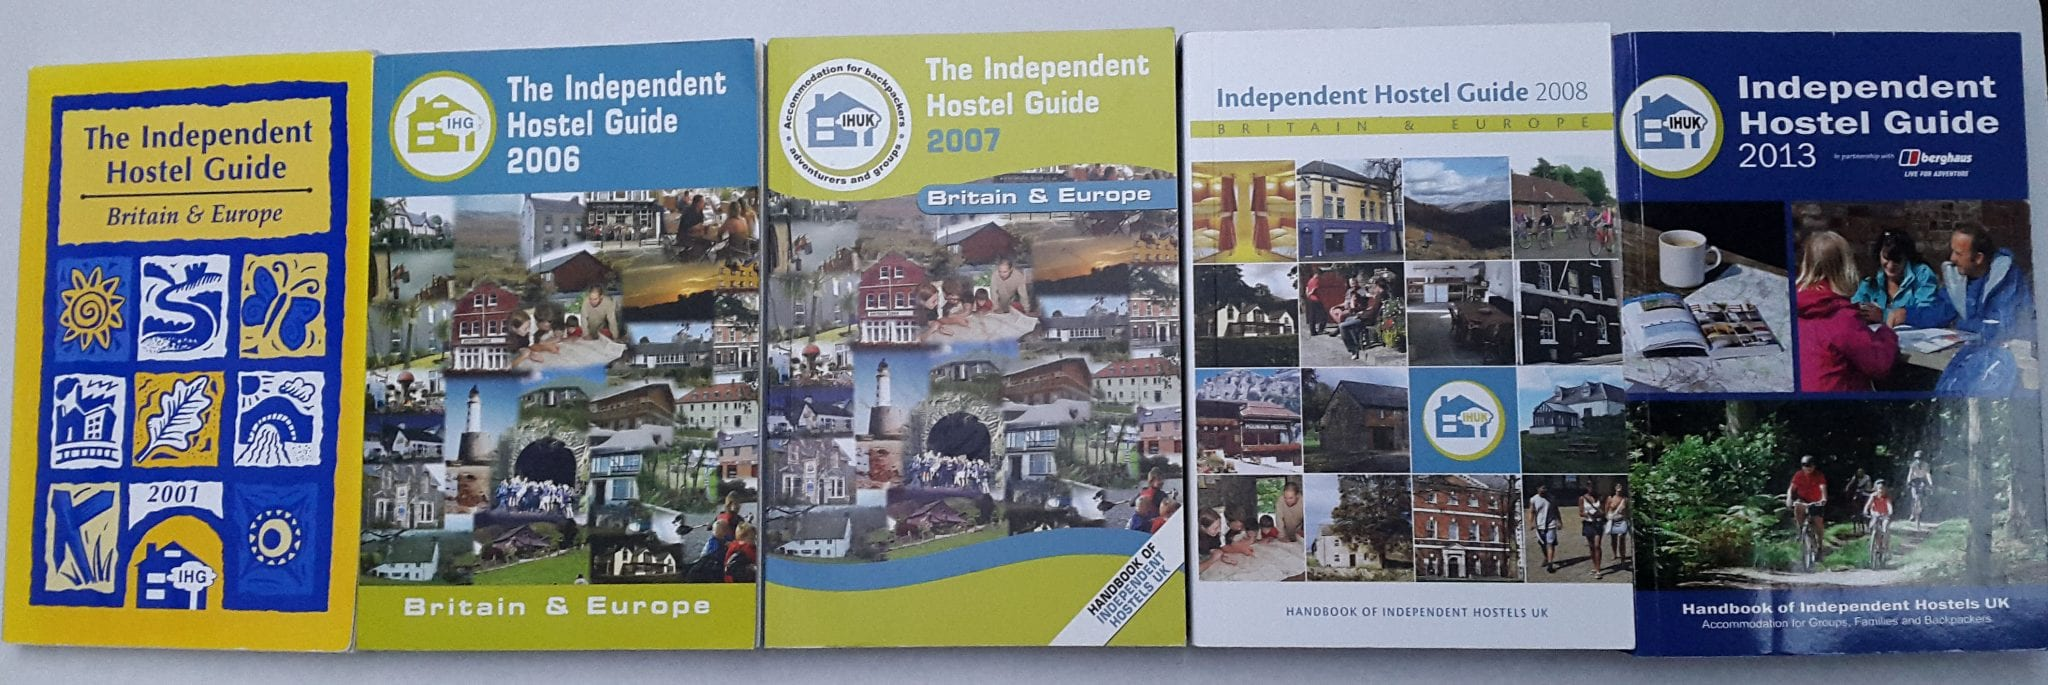 independent hostel guides from 1999 to 2013